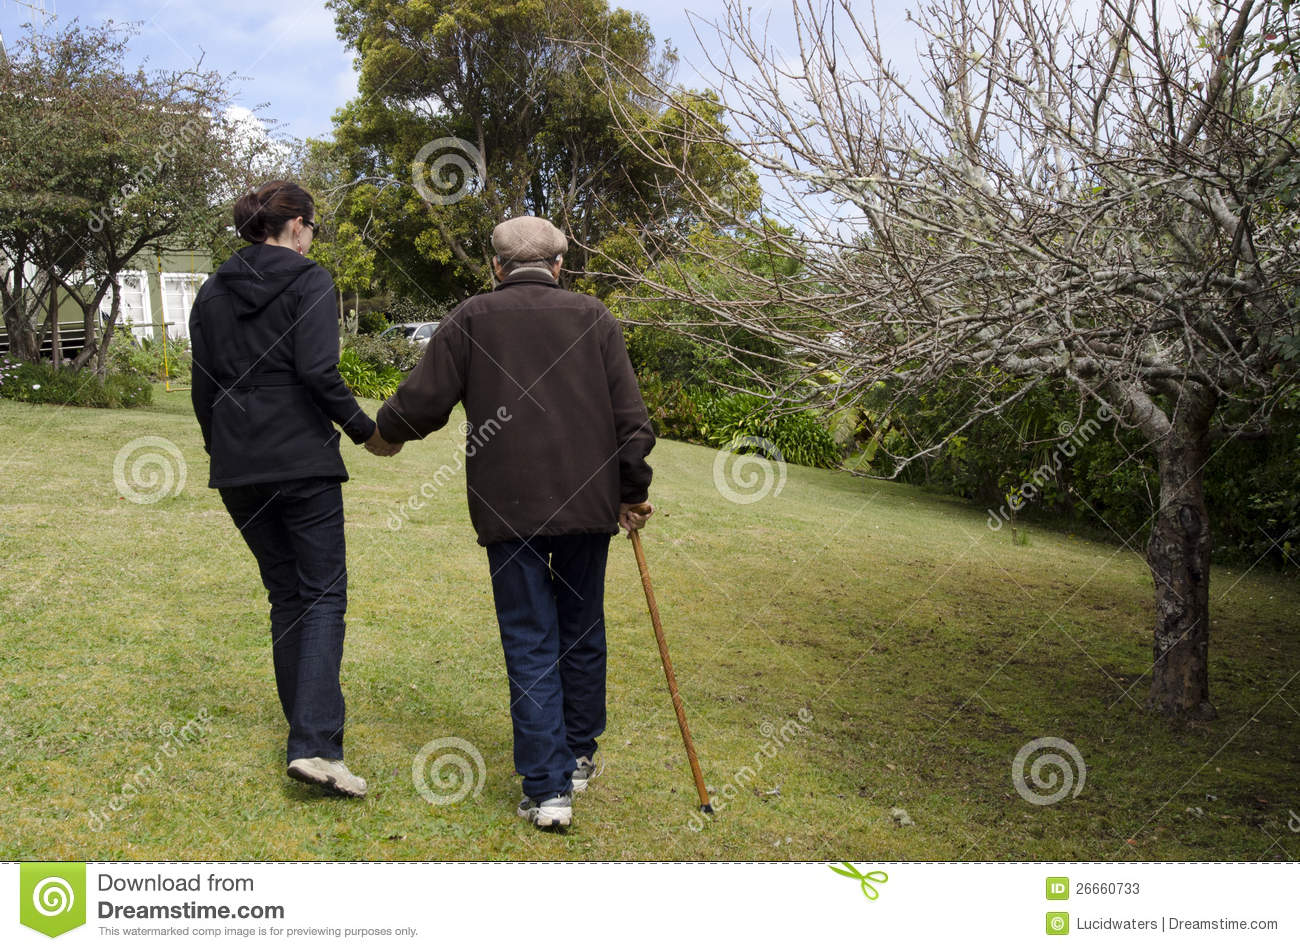 Assisting And Helping Elderly People Stock Photos  Image 26660733